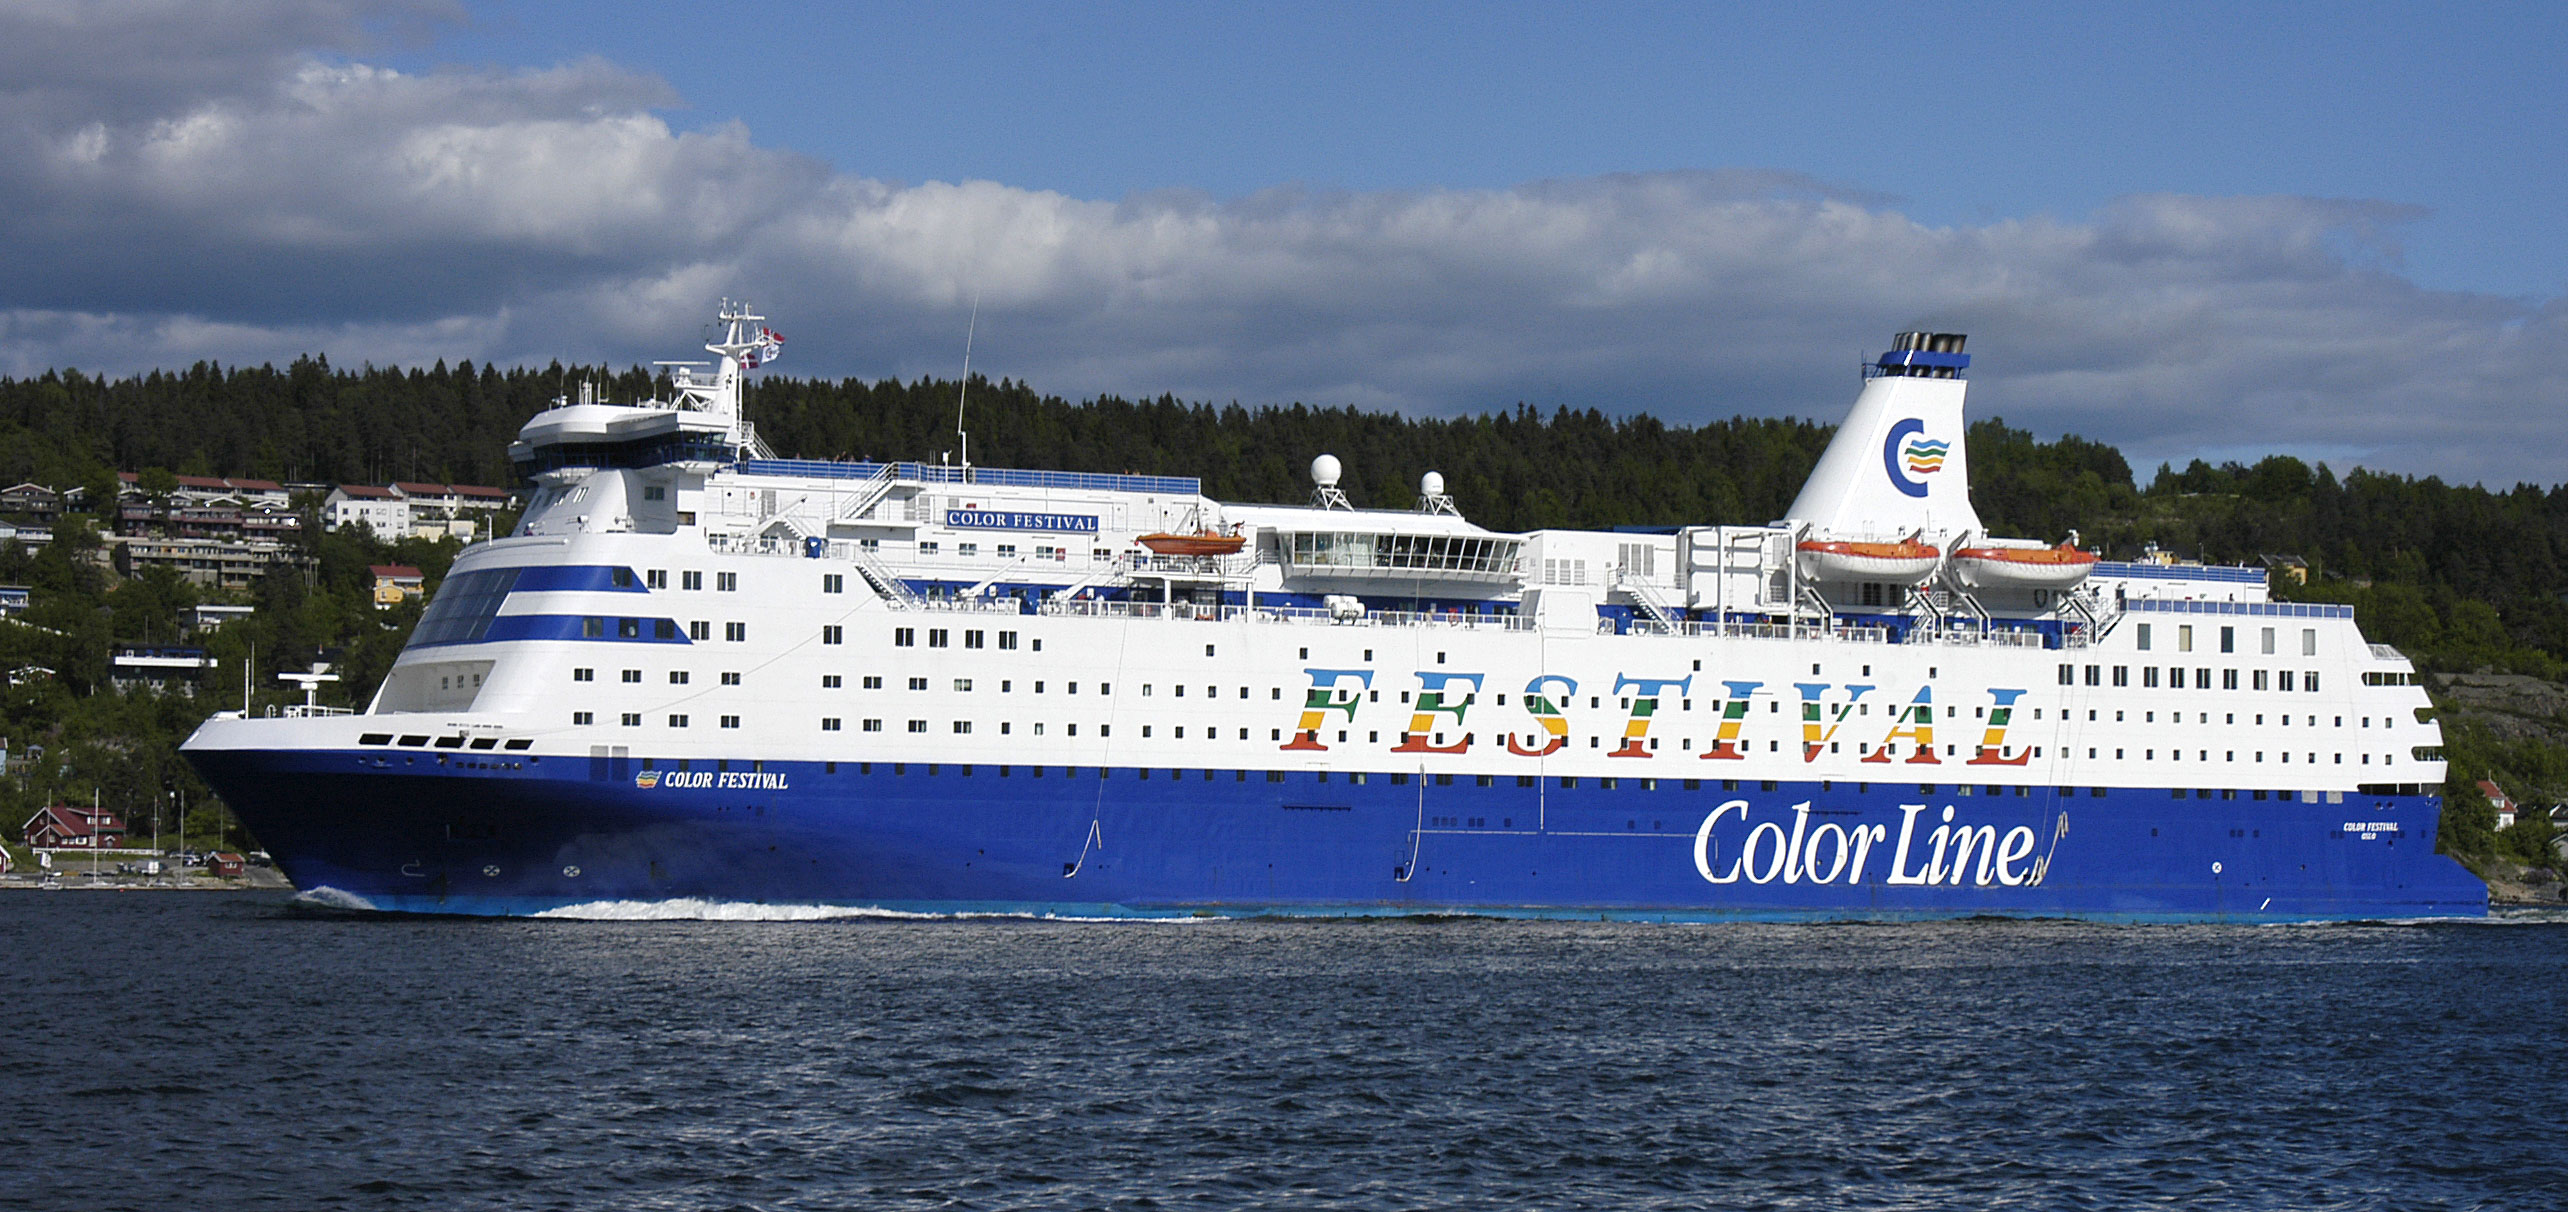 Book color line ferry - Ms Color Festival At The